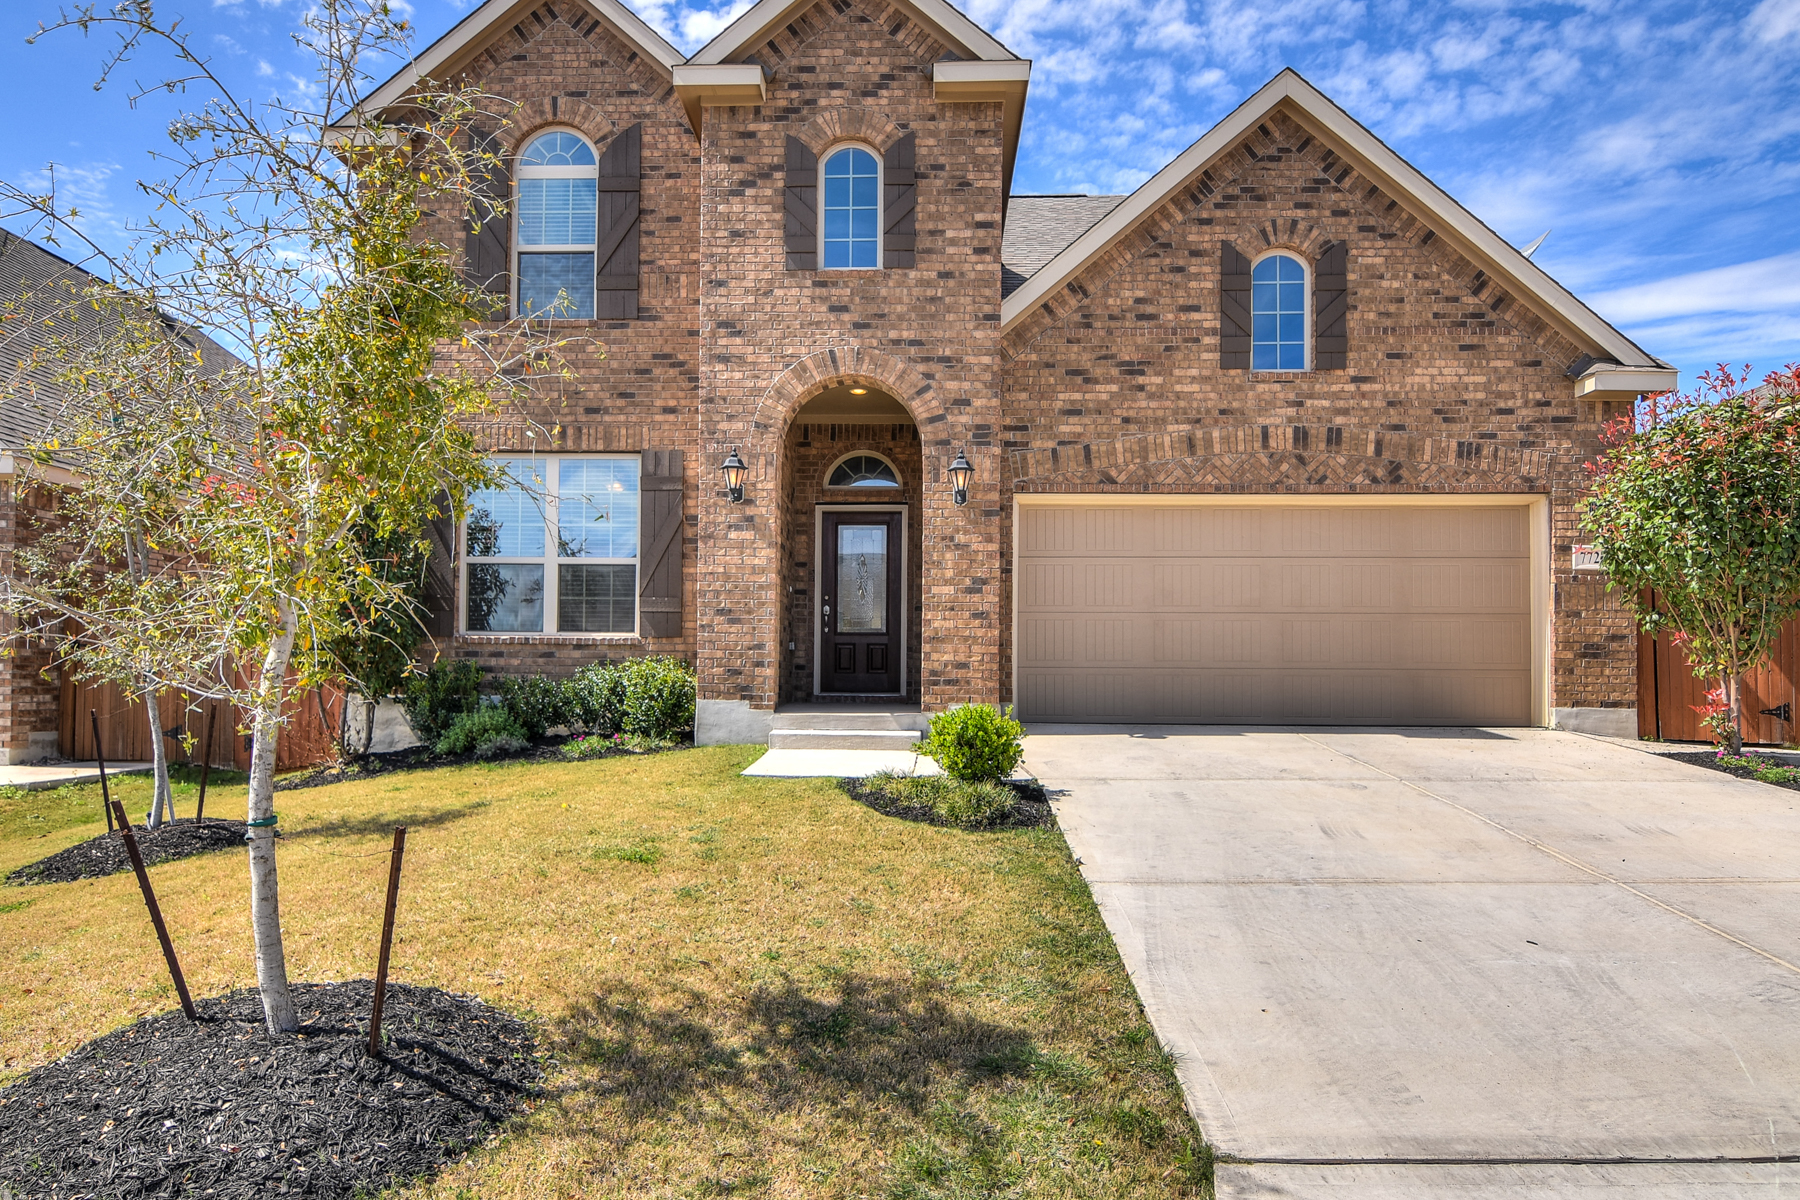 Single Family Home for Sale at Move-In Ready in Stillwater Ranch 7727 William Bonney San Antonio, Texas 78254 United States